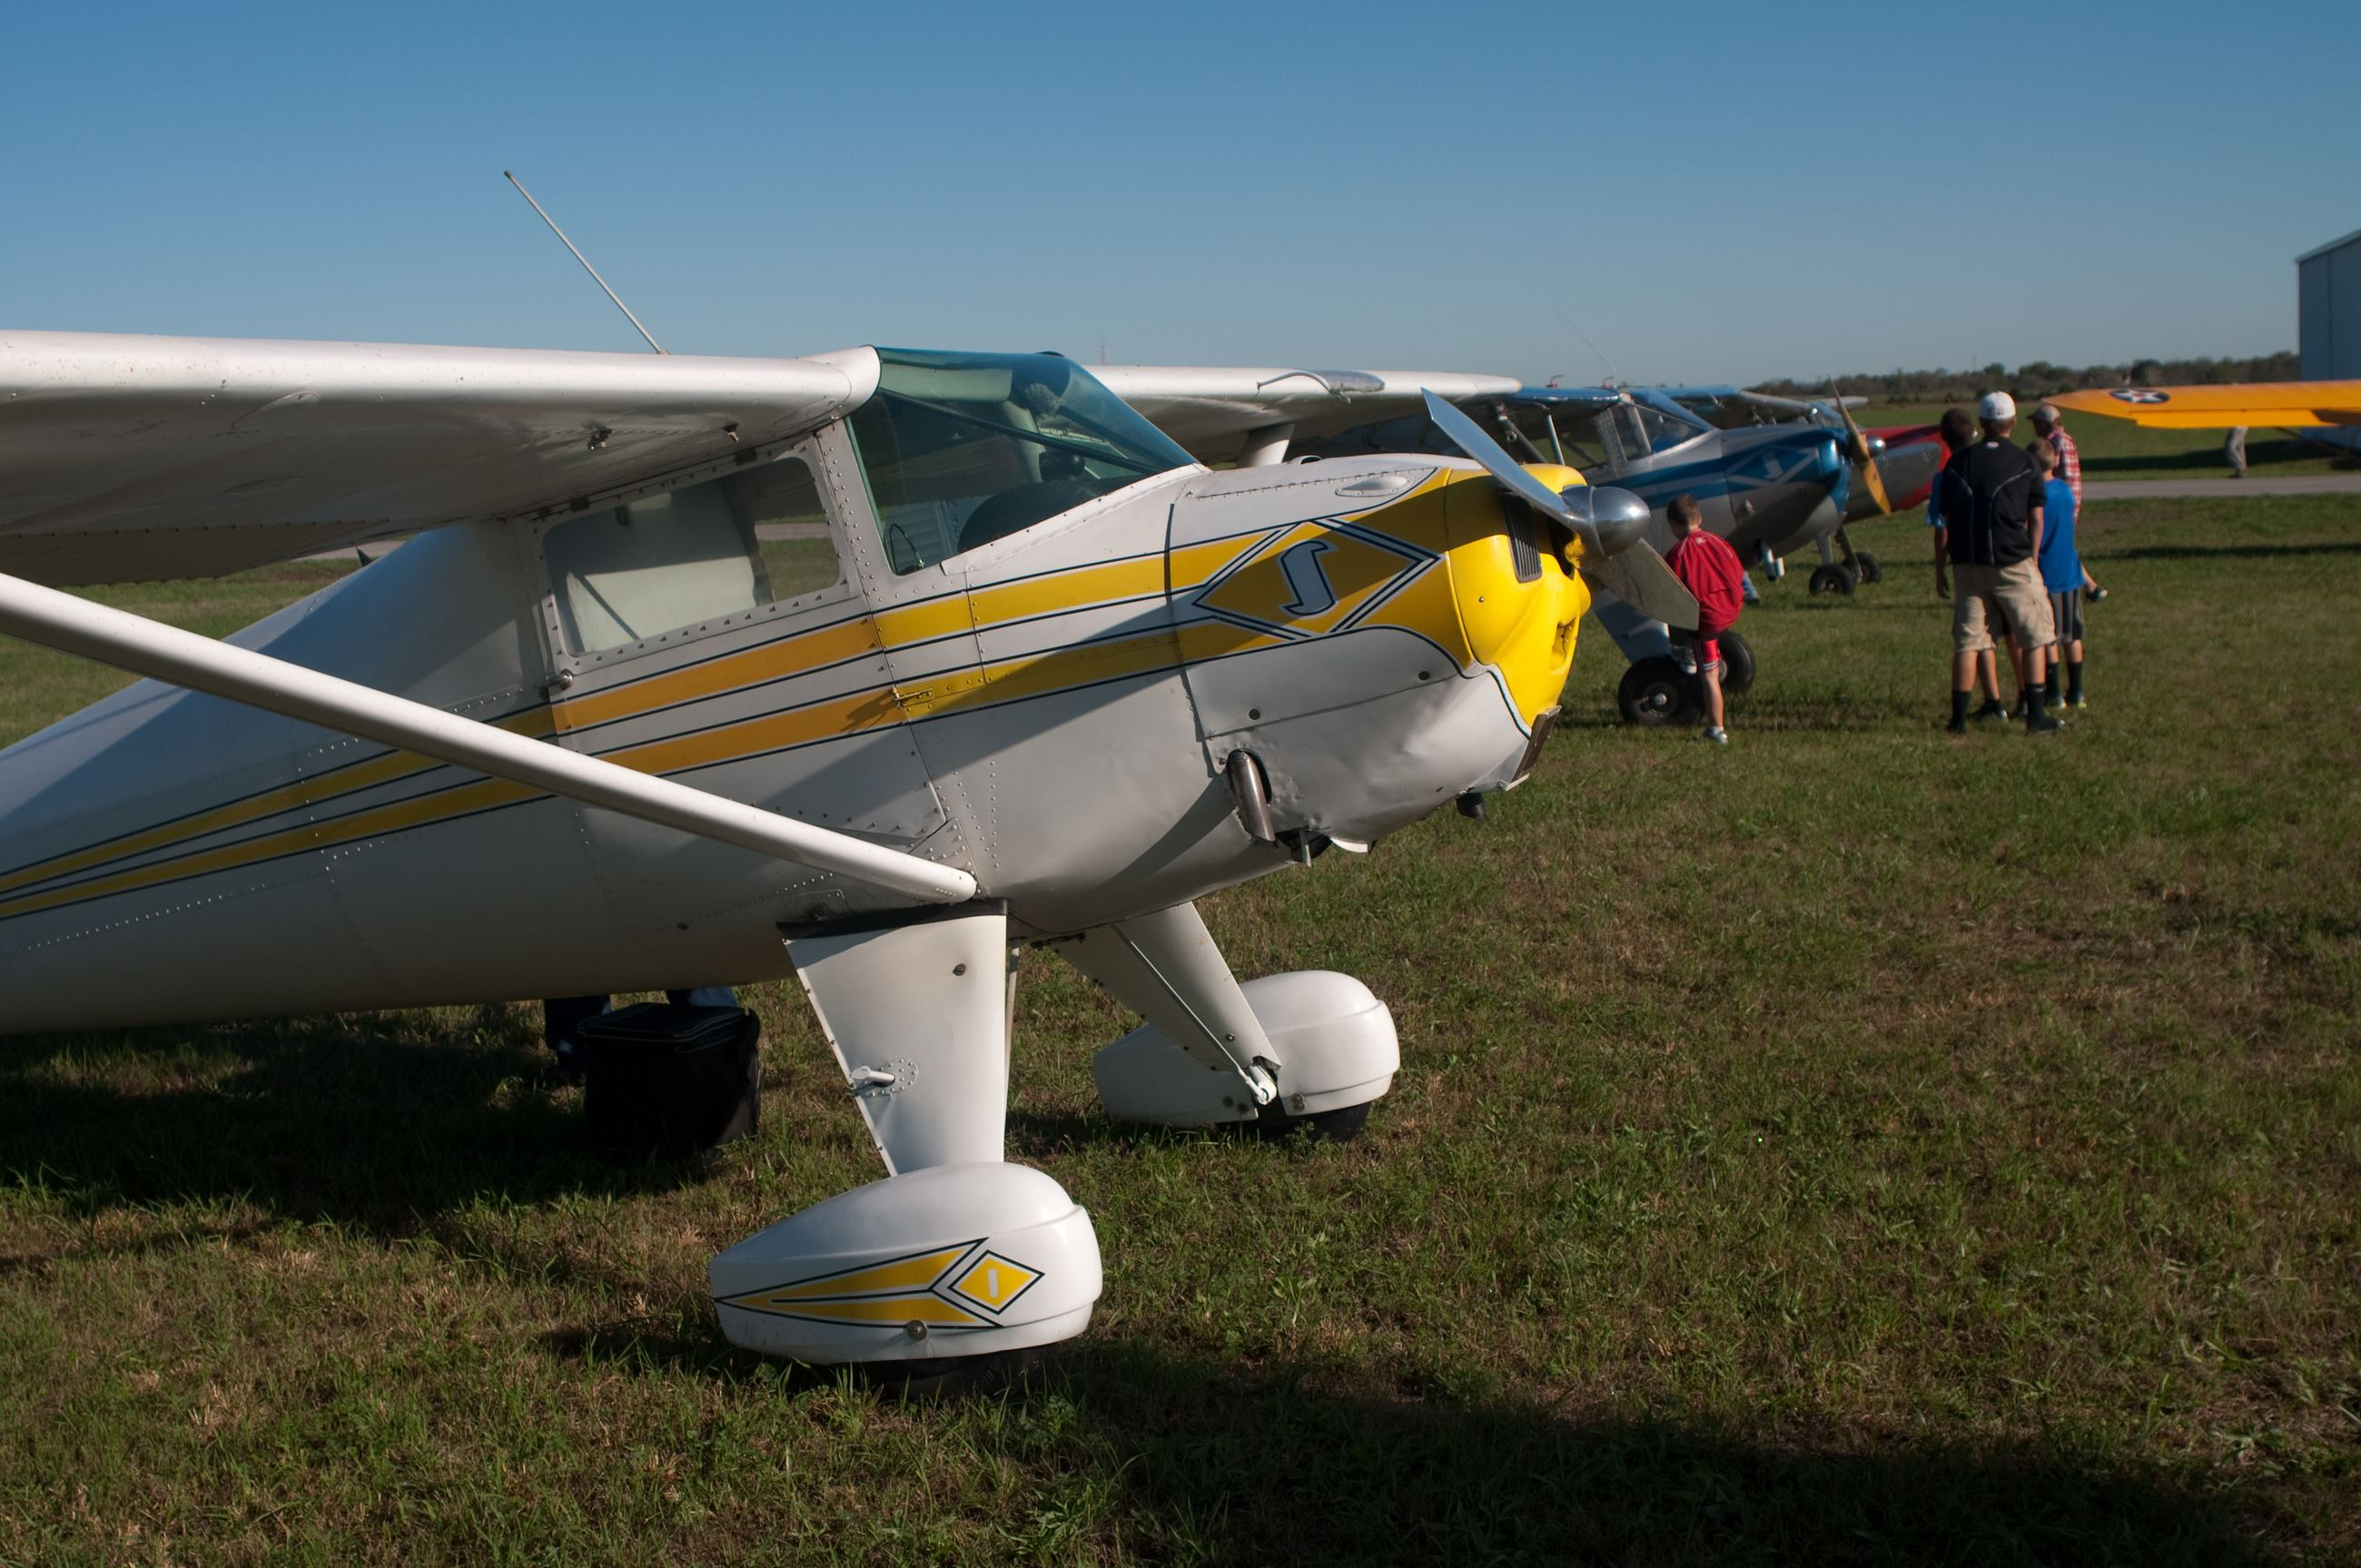 White and Yellow Plane